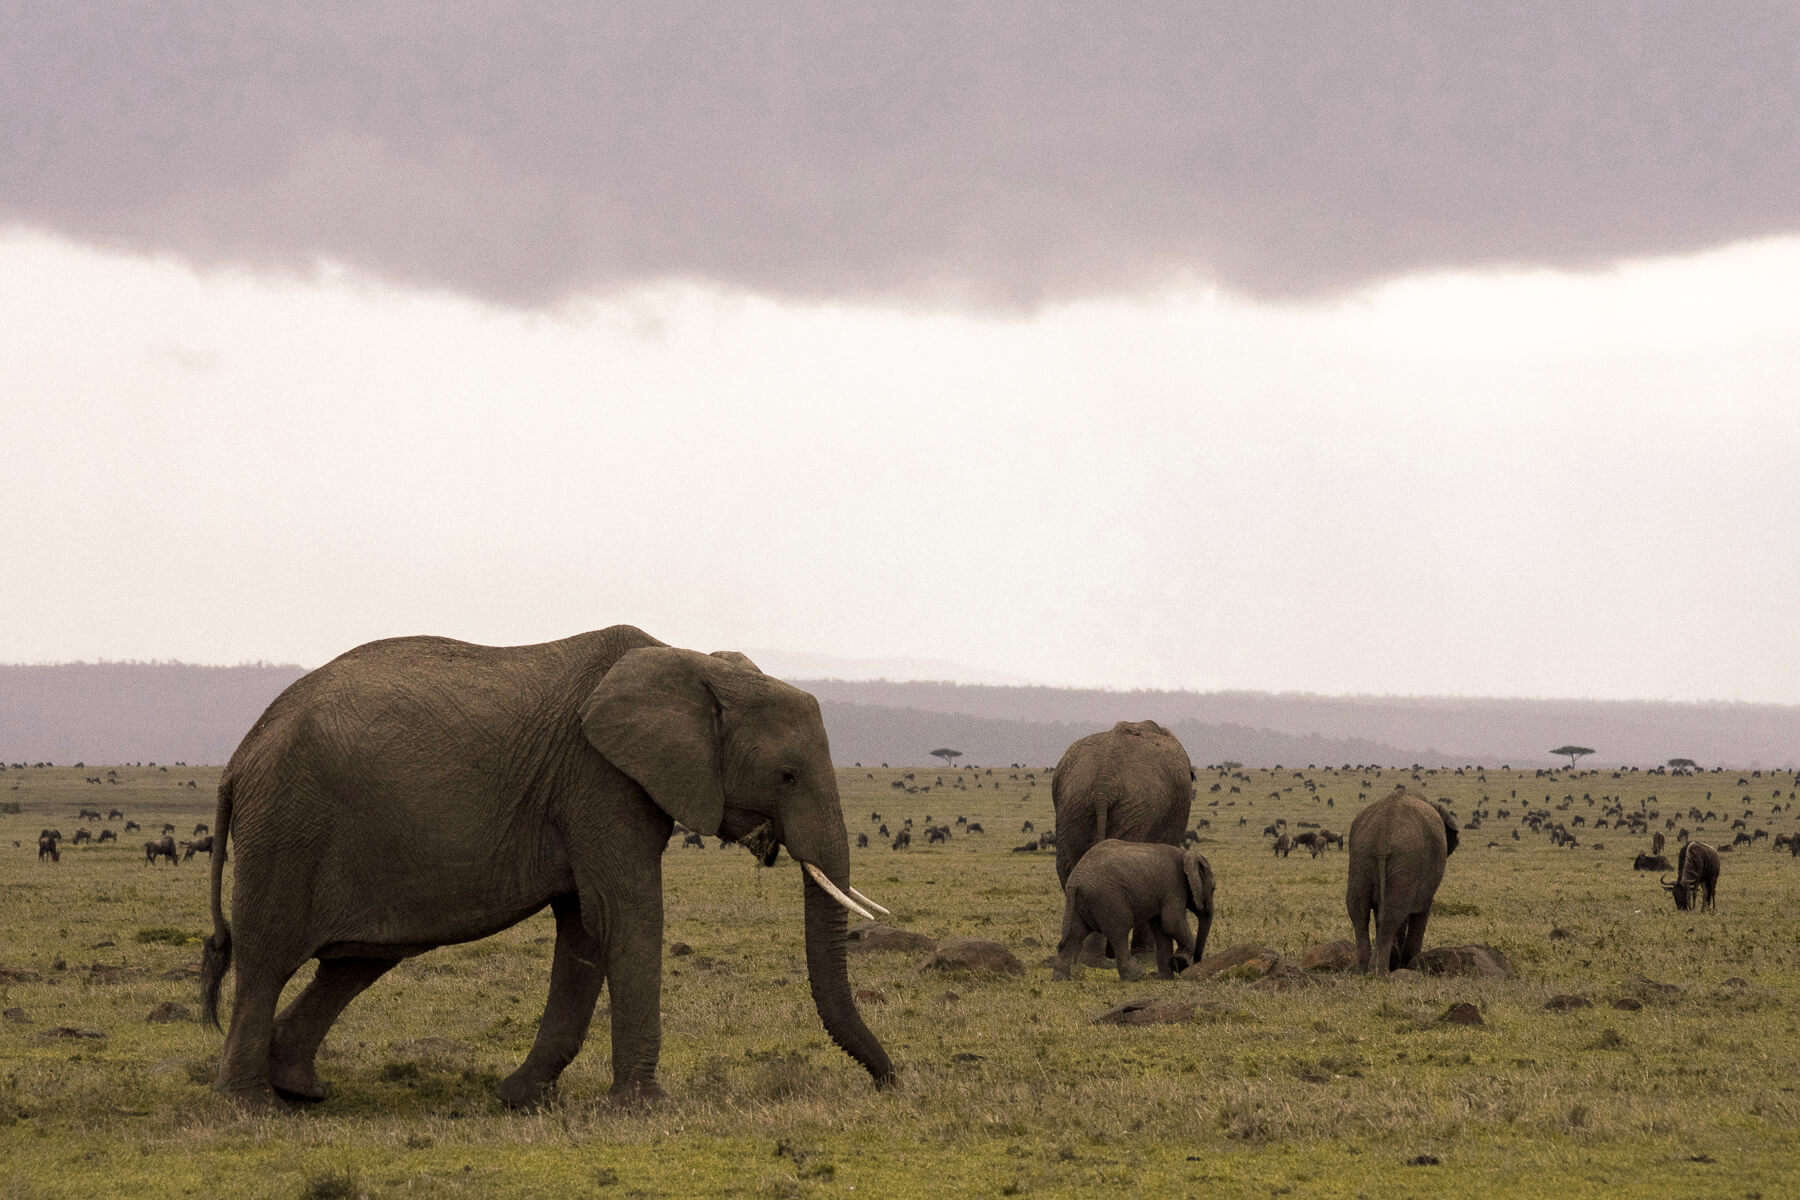 An elephant herd in front of thousands of Wildebeest before the rain